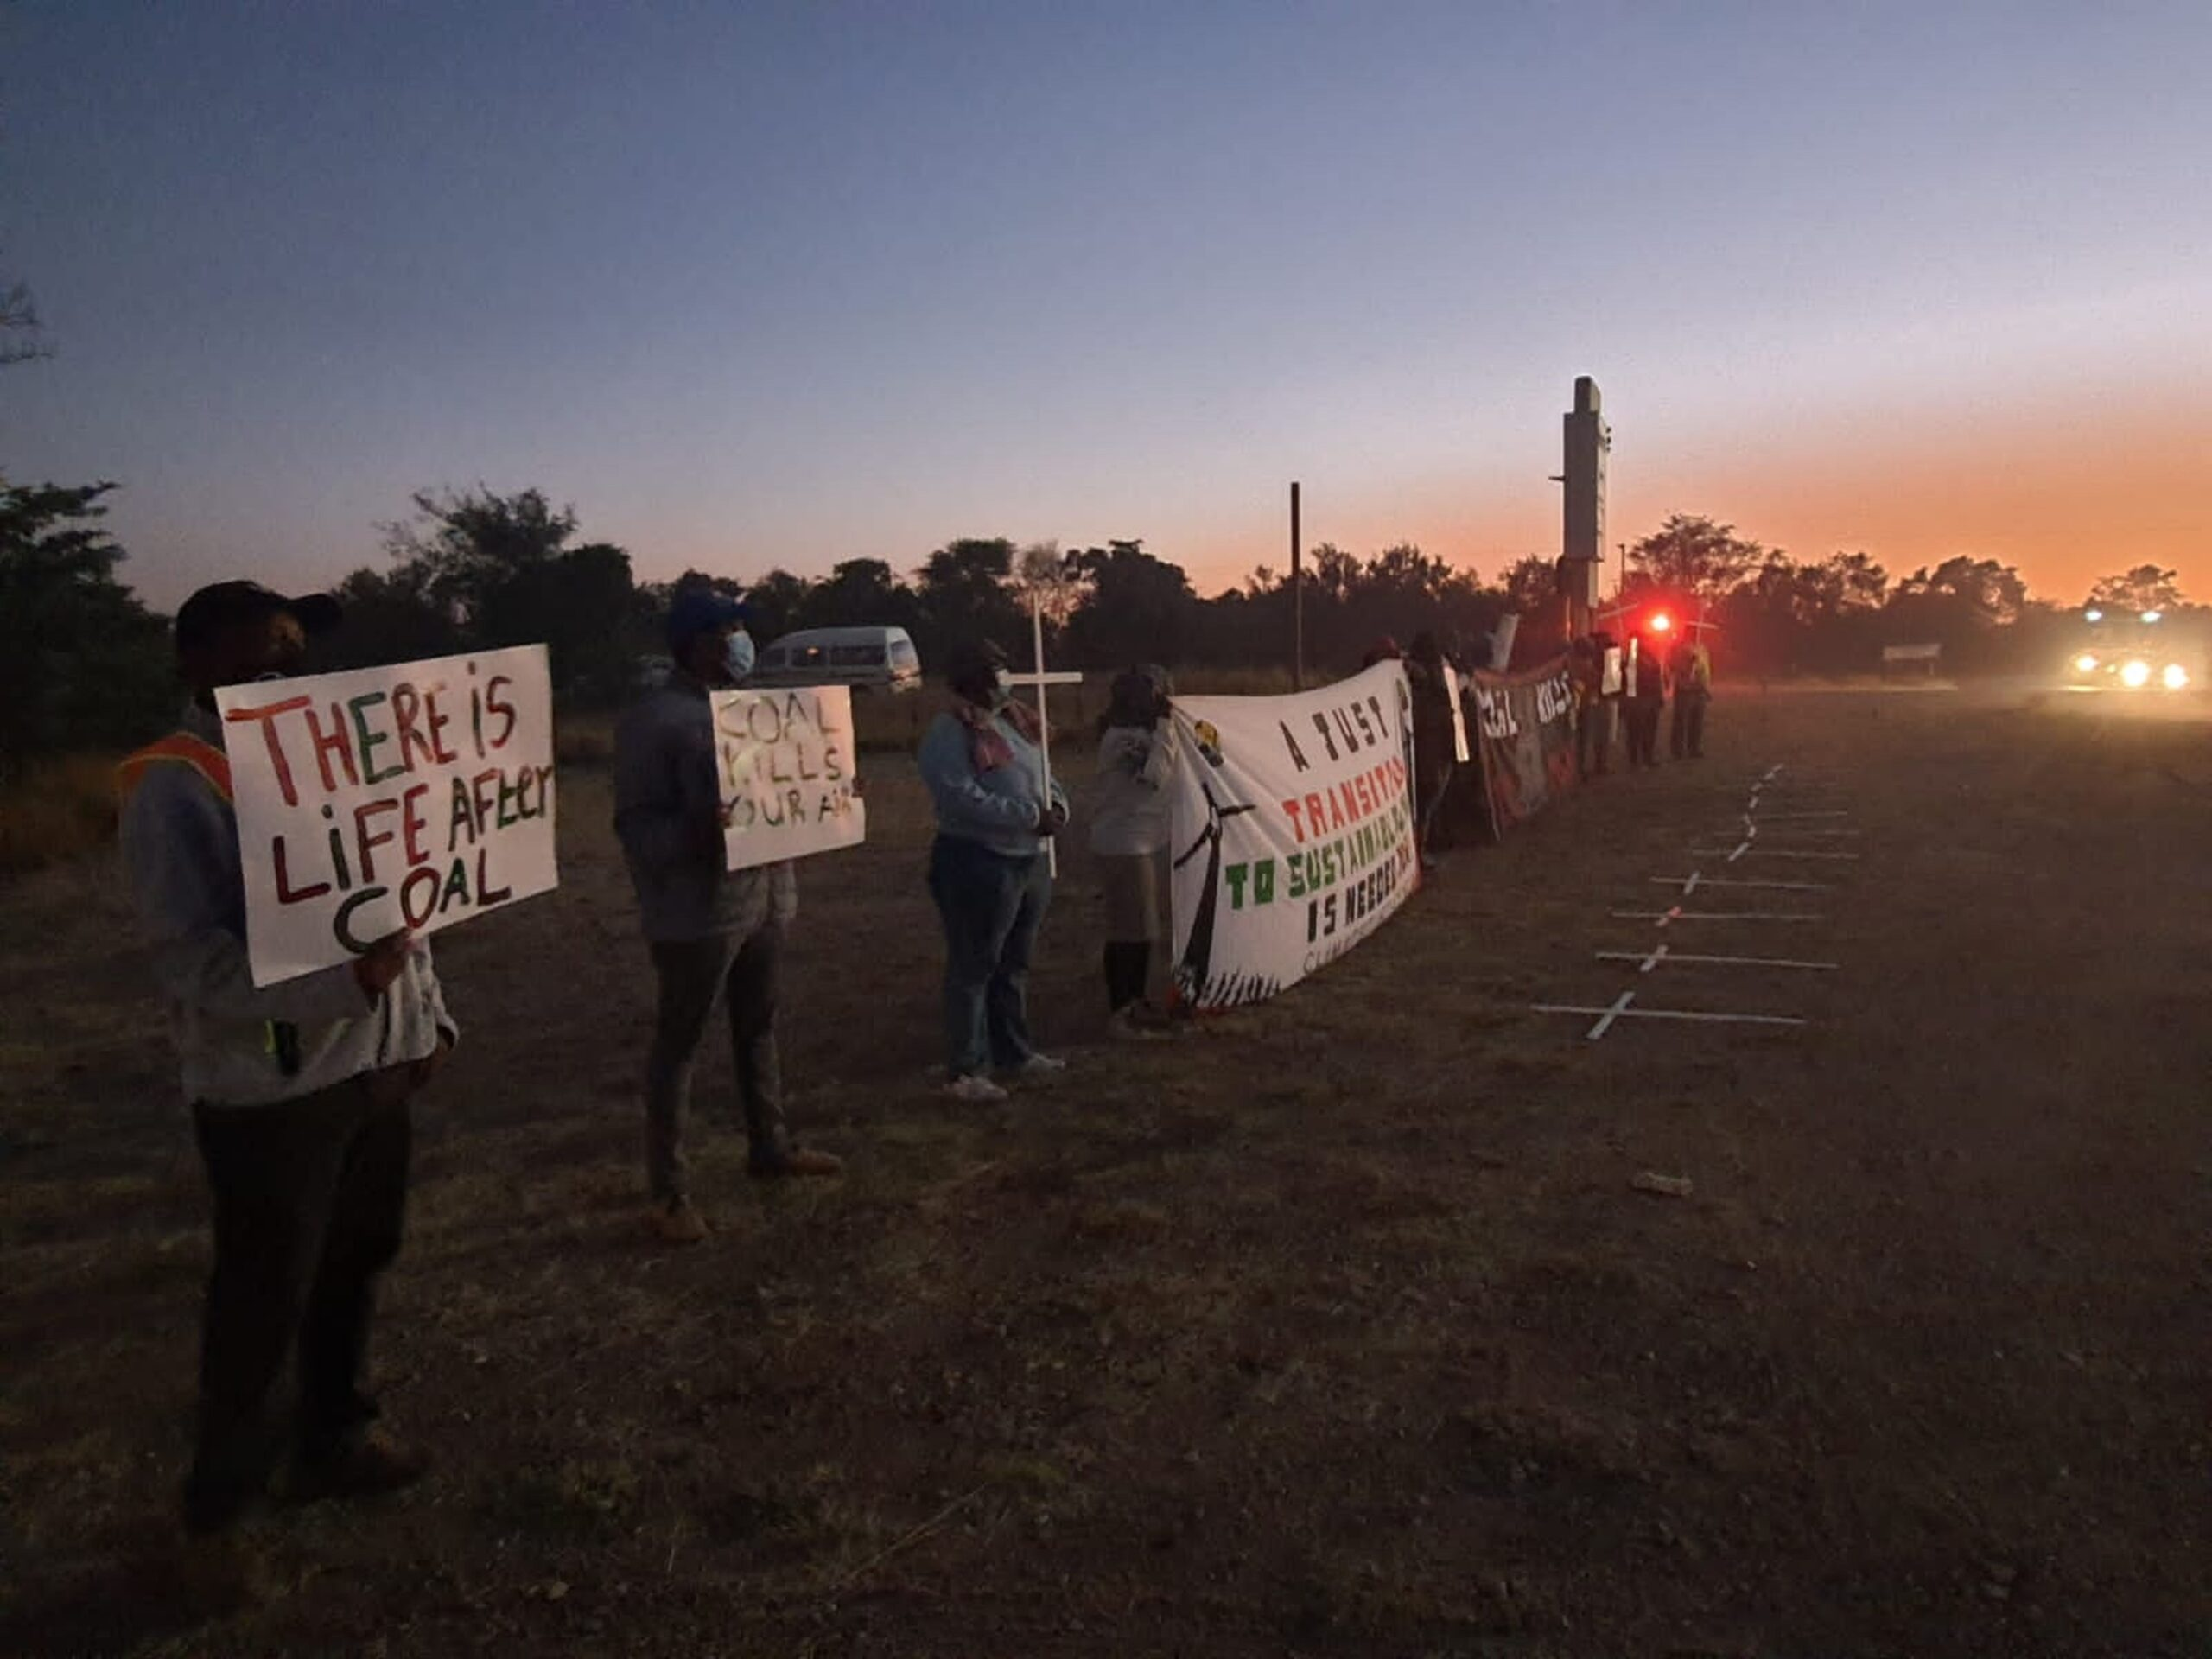 """RESIDENTS OF LEPHALALE TAKE TO THE STREETS – """"THERE IS LIFE AFTER COAL. STOP KILLING US!"""""""